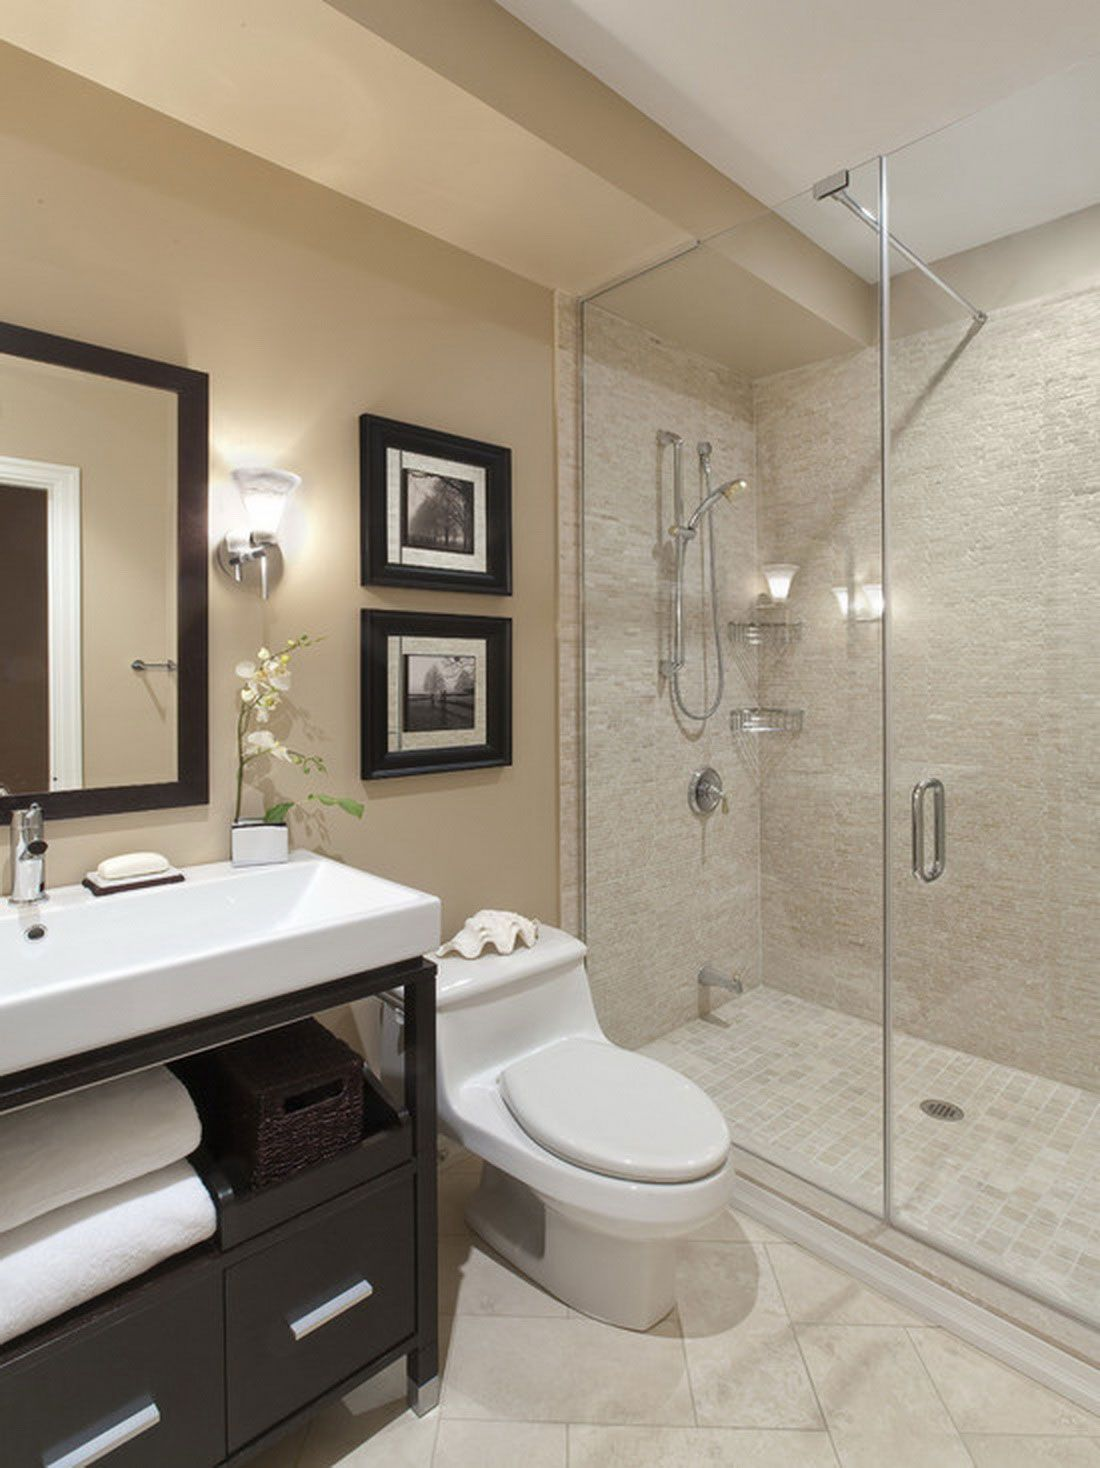 15 extraordinary transitional bathroom designs for any home - Bathroom Designs Contemporary